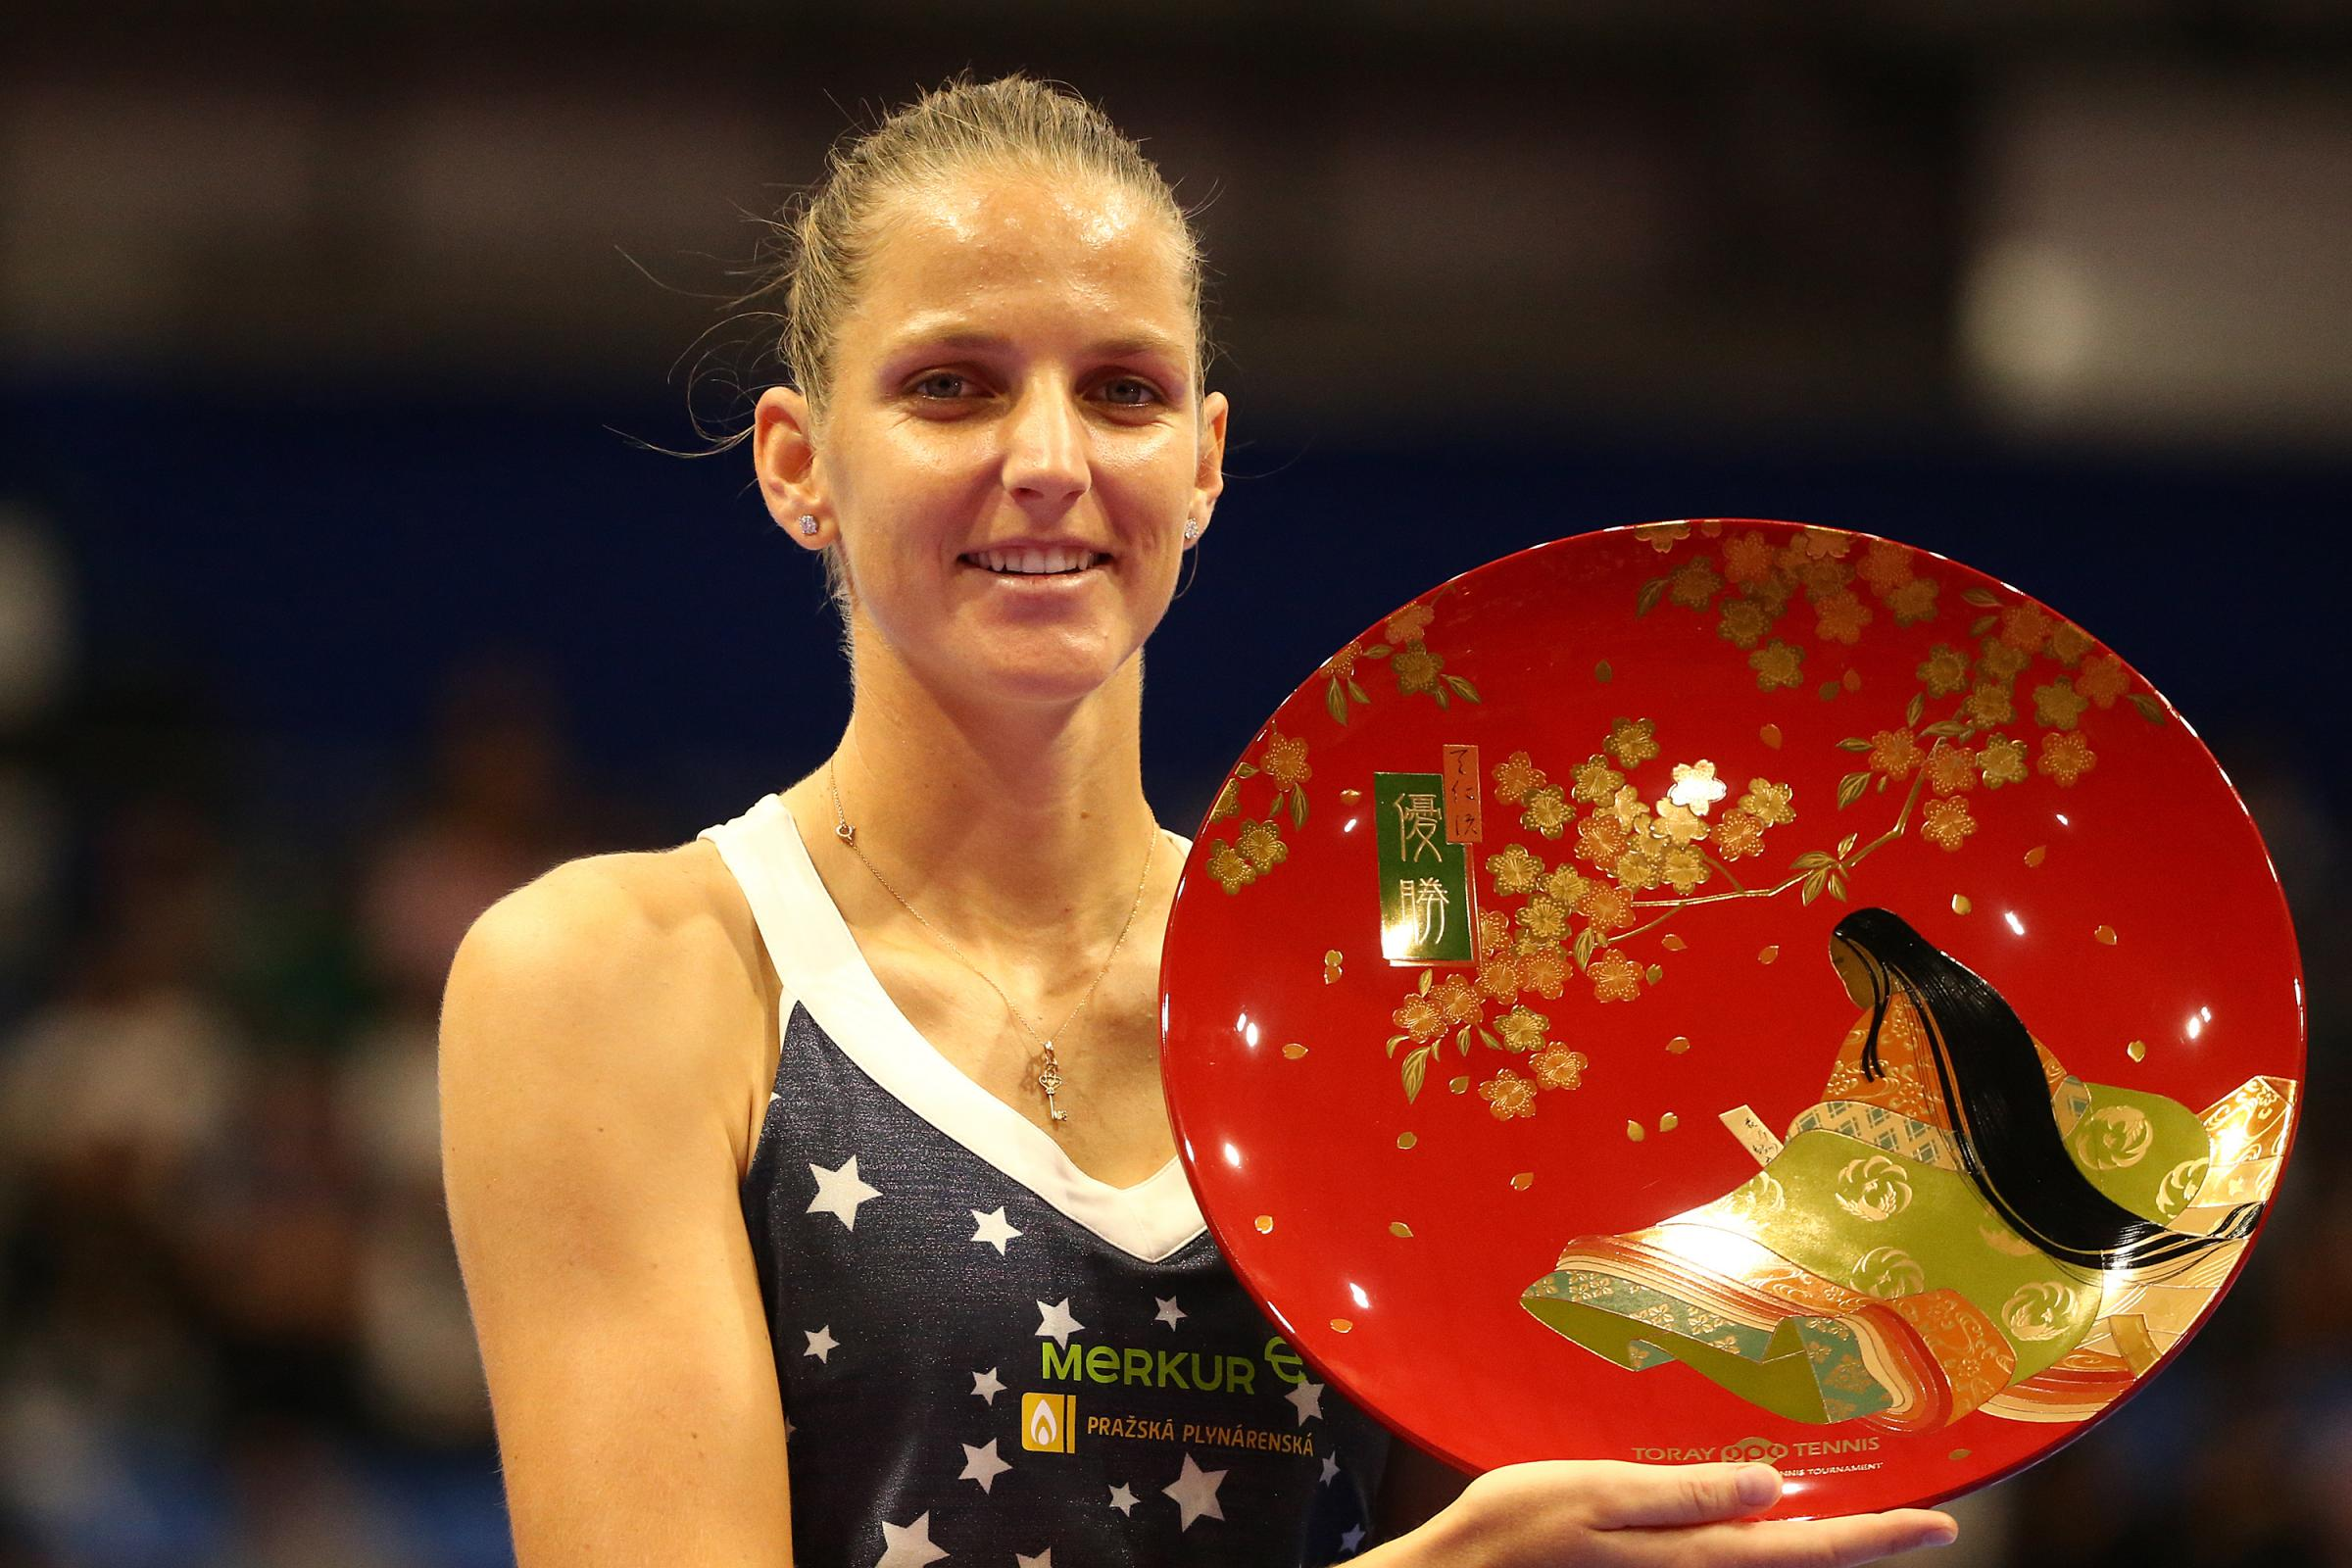 TACHIKAWA, JAPAN - SEPTEMBER 23: Singles champion Karolina Pliskova of the Czech Republic poses for photographs with the trophy after the Singles final against Naomi Osaka of Japan on day seven of the Toray Pan Pacific Open at Arena Tachikawa Tachihi on S